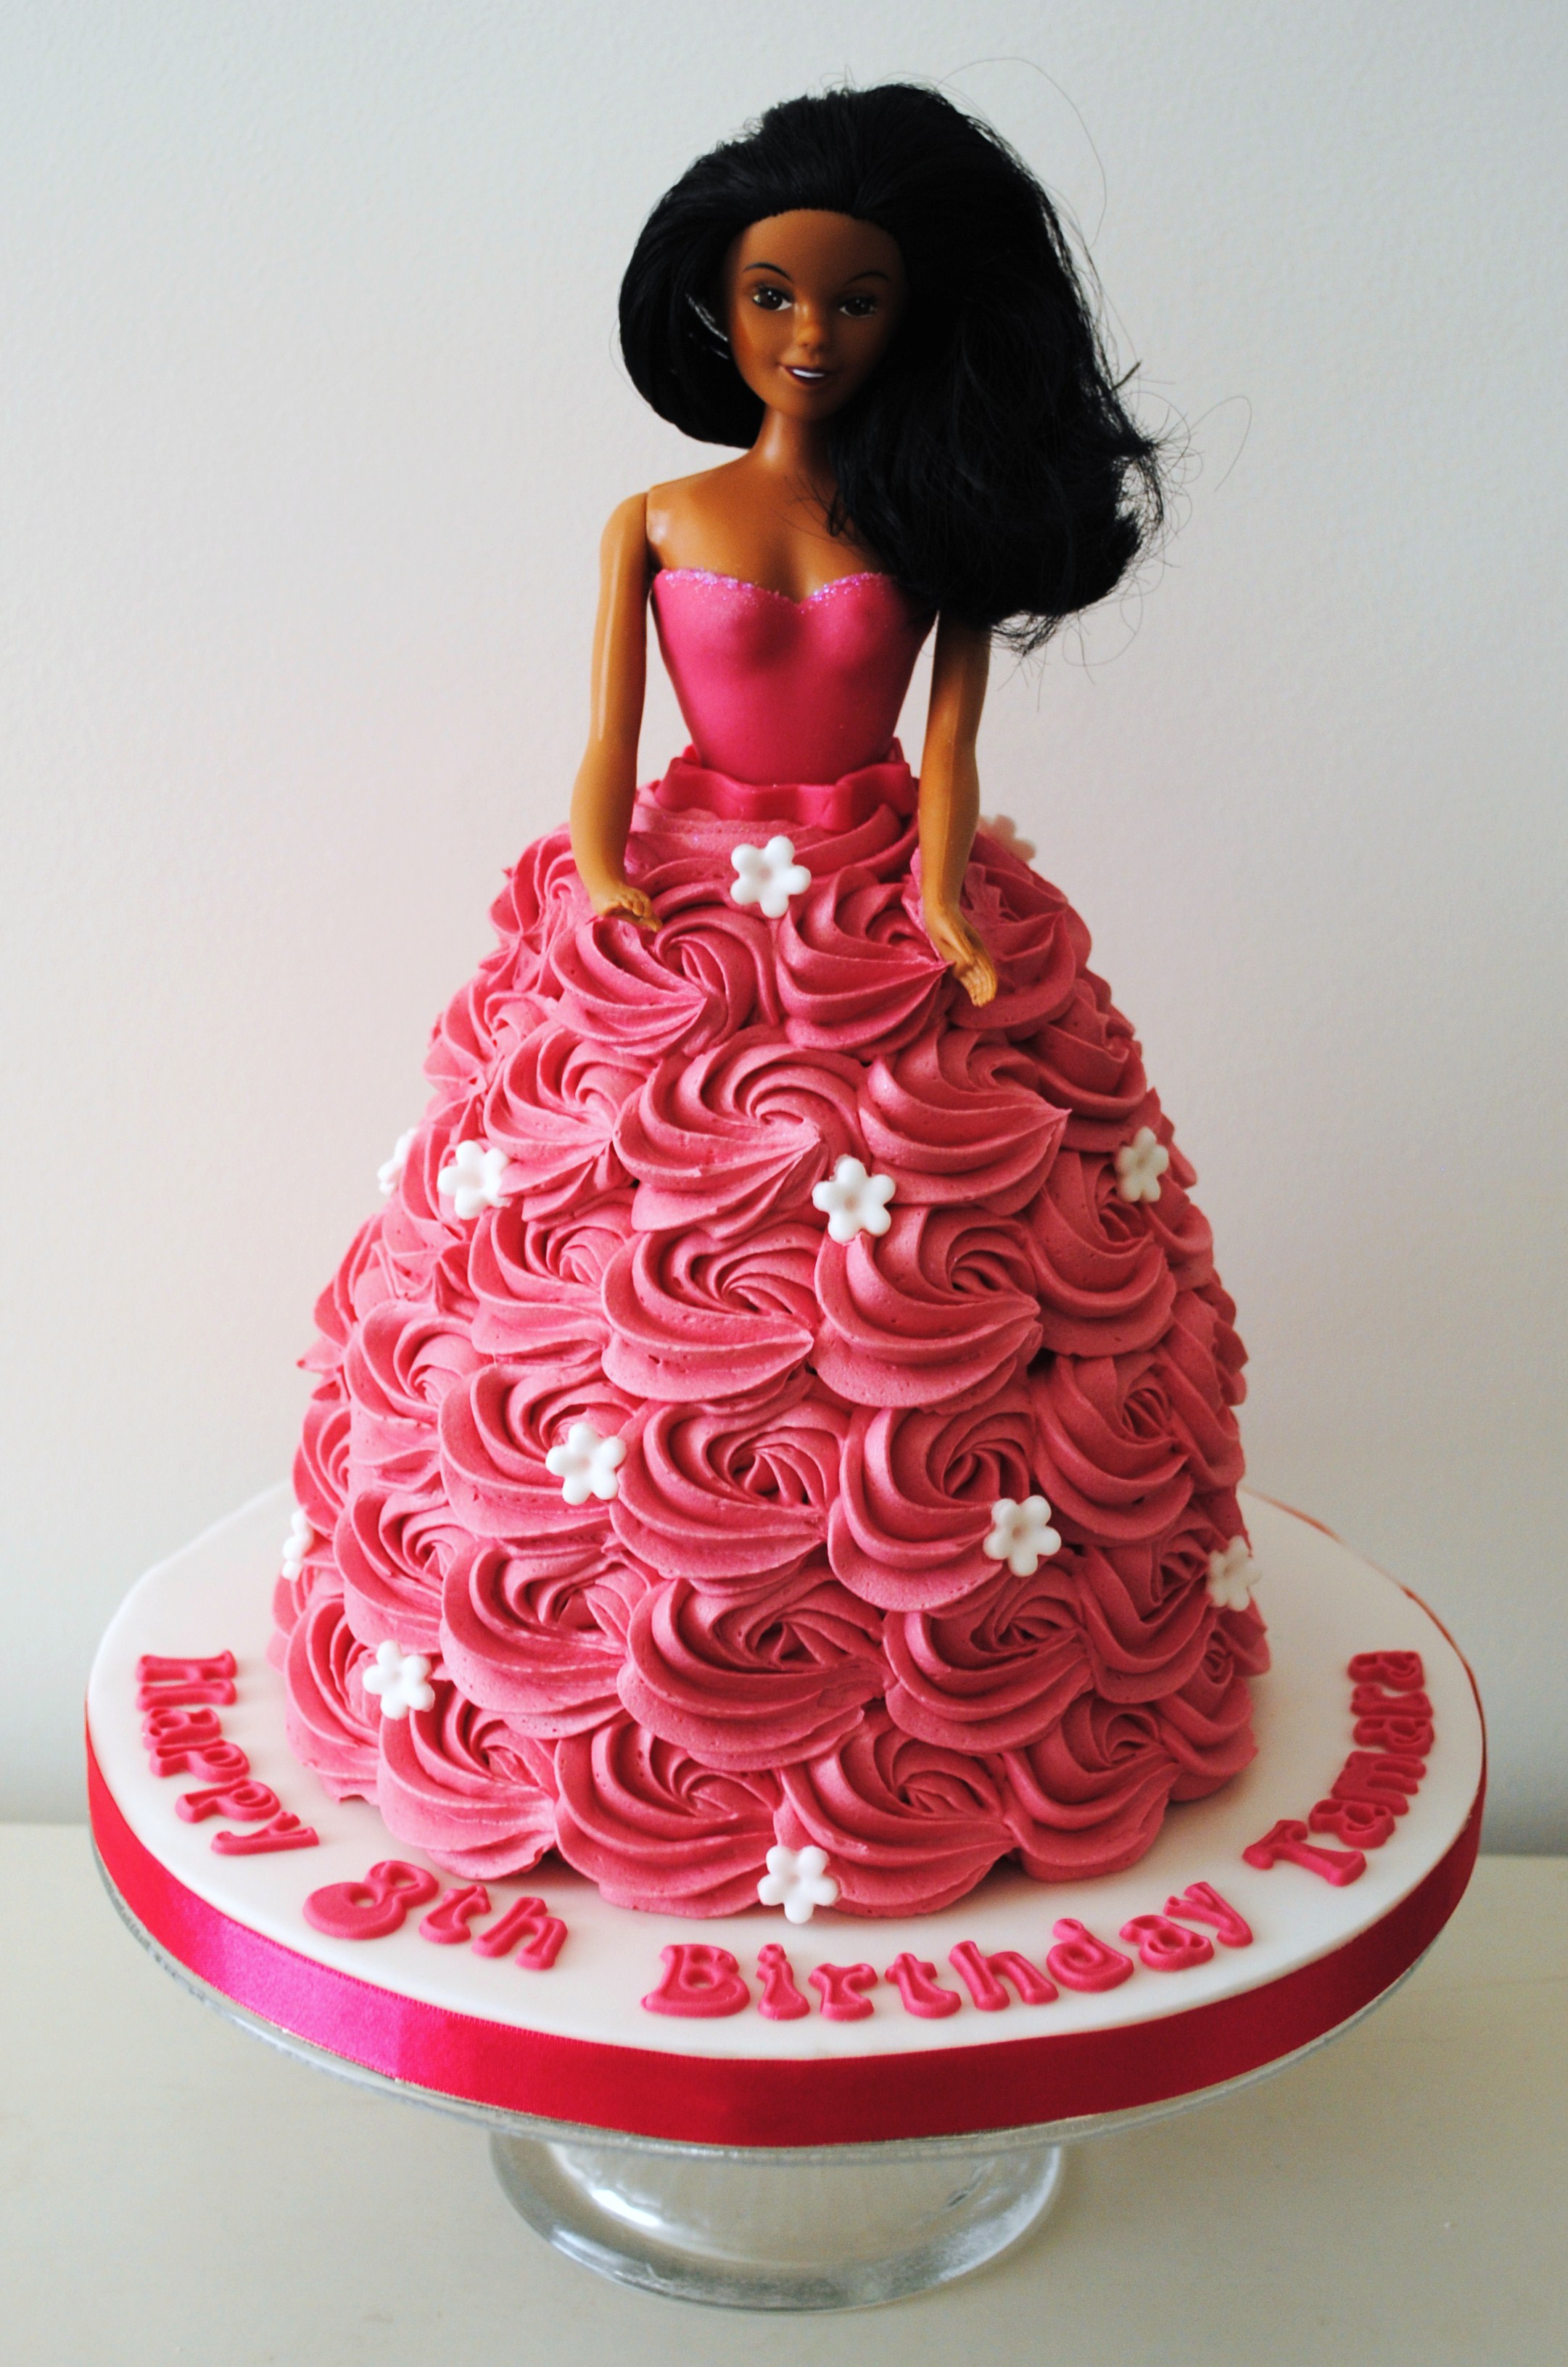 Miss Cupcakes 187 Blog Archive 187 Barbie Doll Birthday Cake